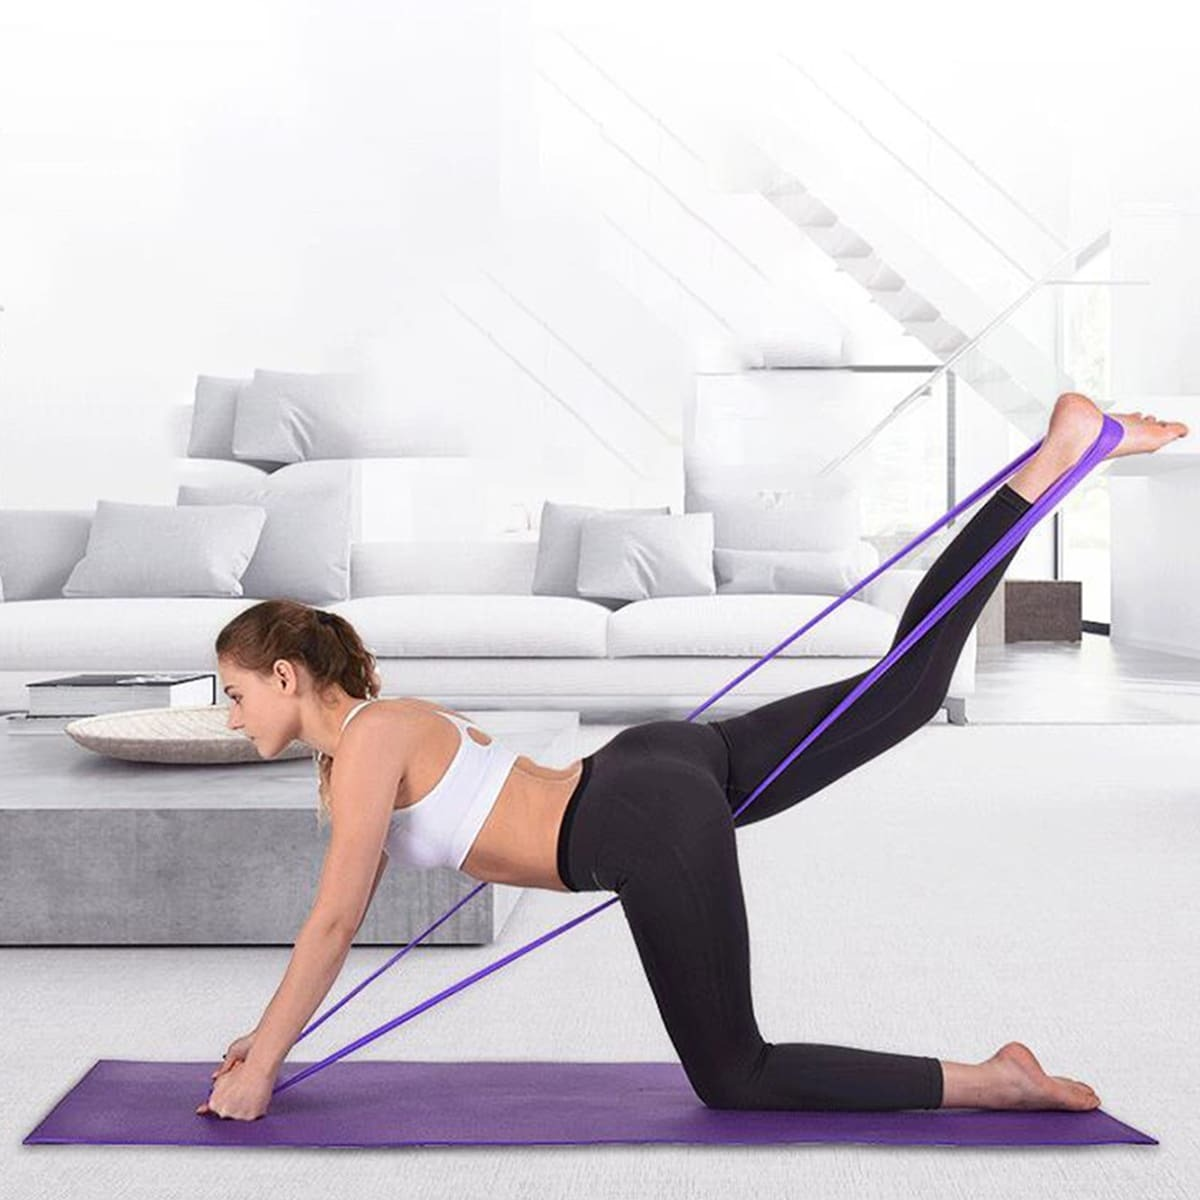 SHEIN coupon: Yoga Elastic Loop Resistance Band 1pc